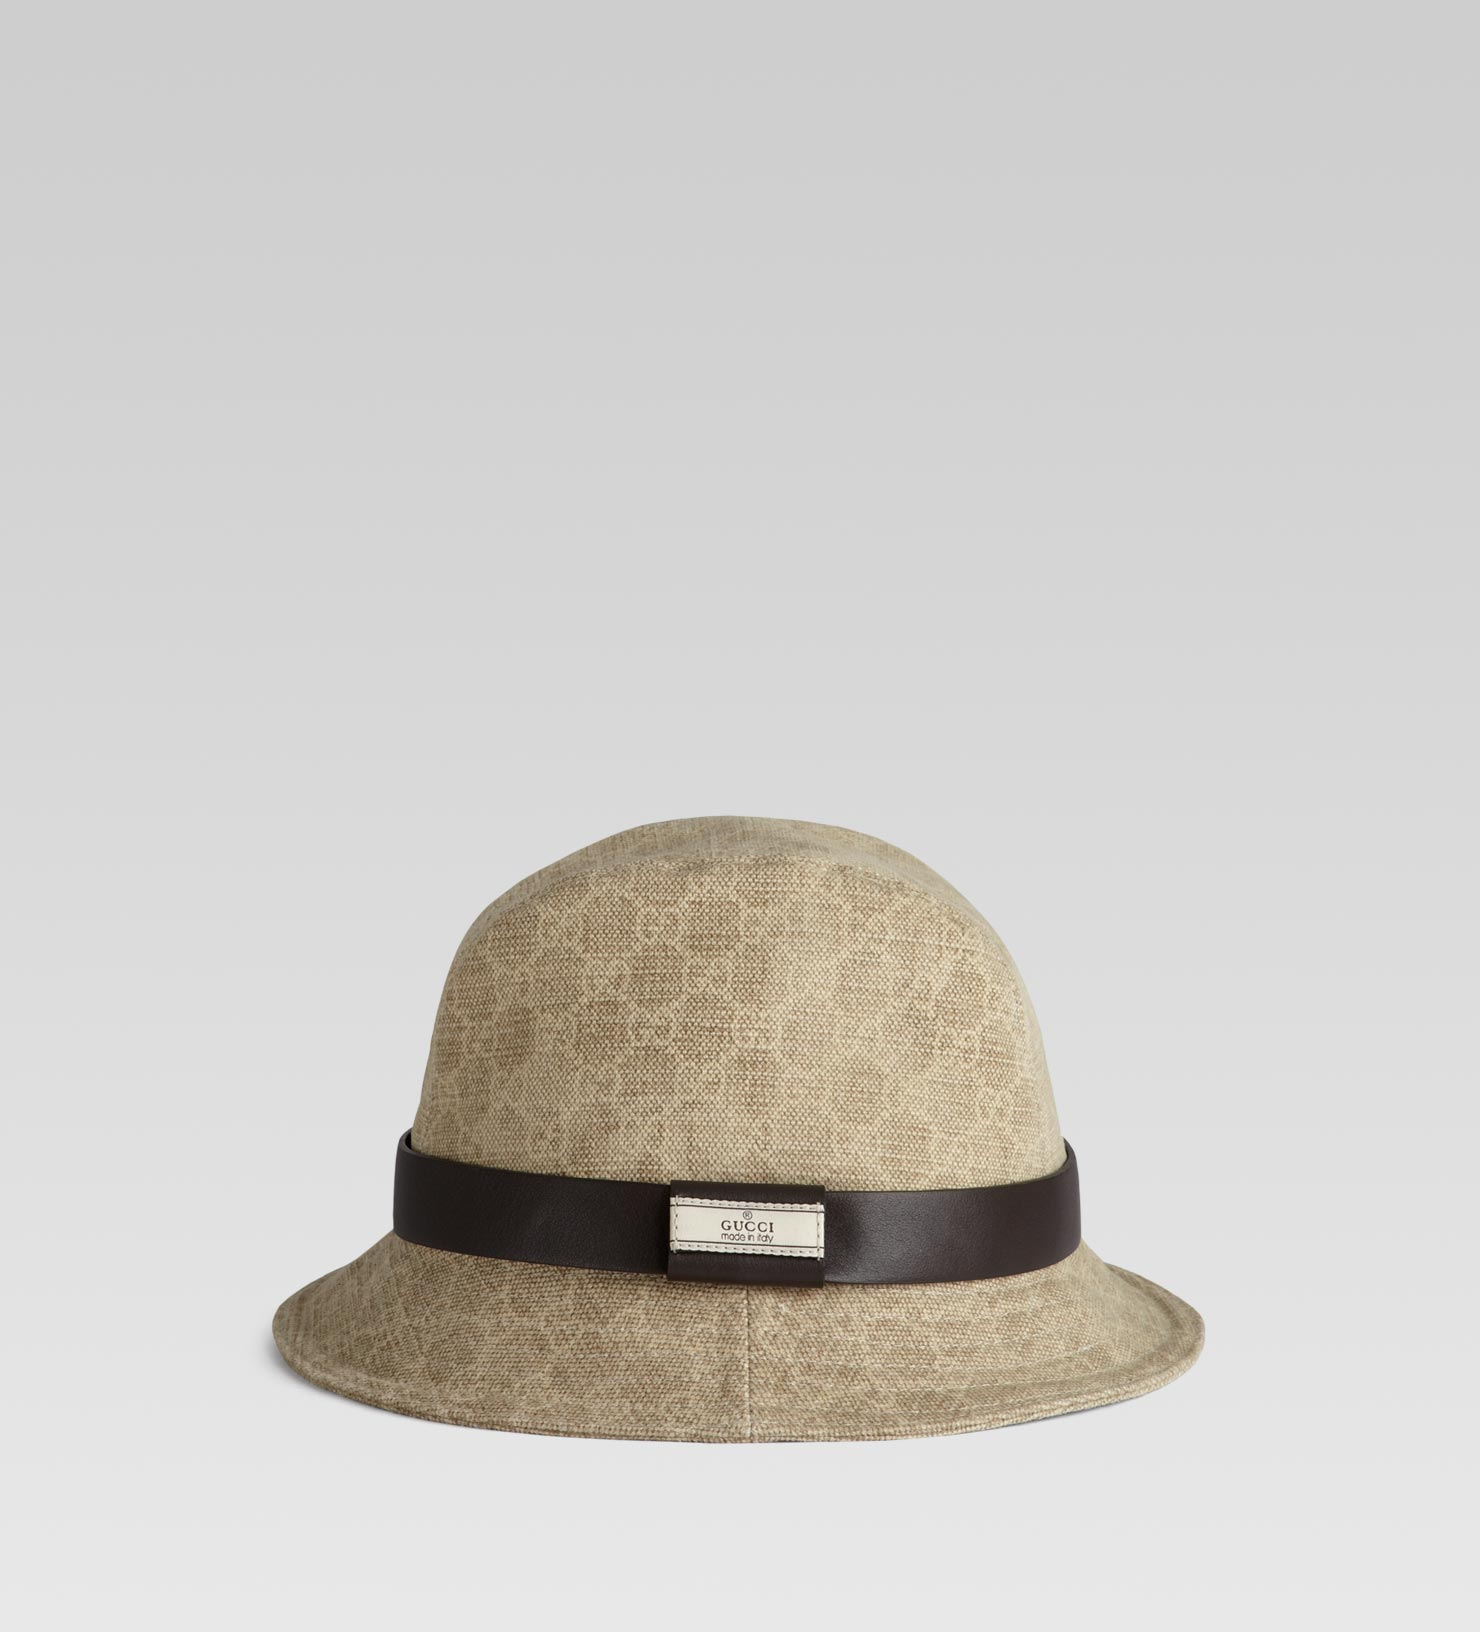 53955e998229 Lyst - Gucci Fedora with Gucci Trademark Detail in Natural for Men